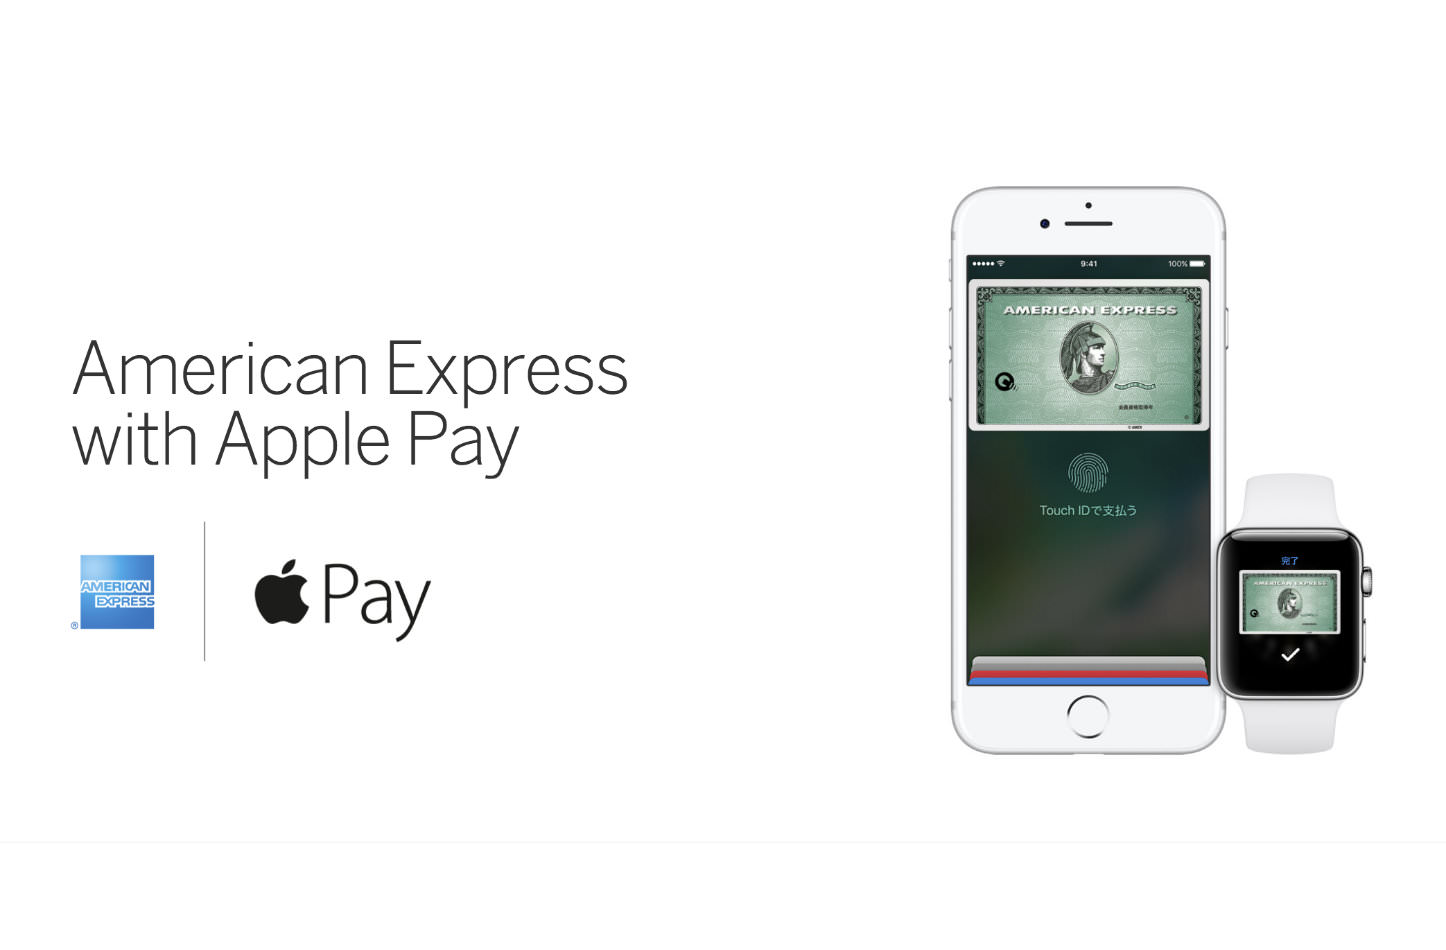 AMEX with Apple Pay